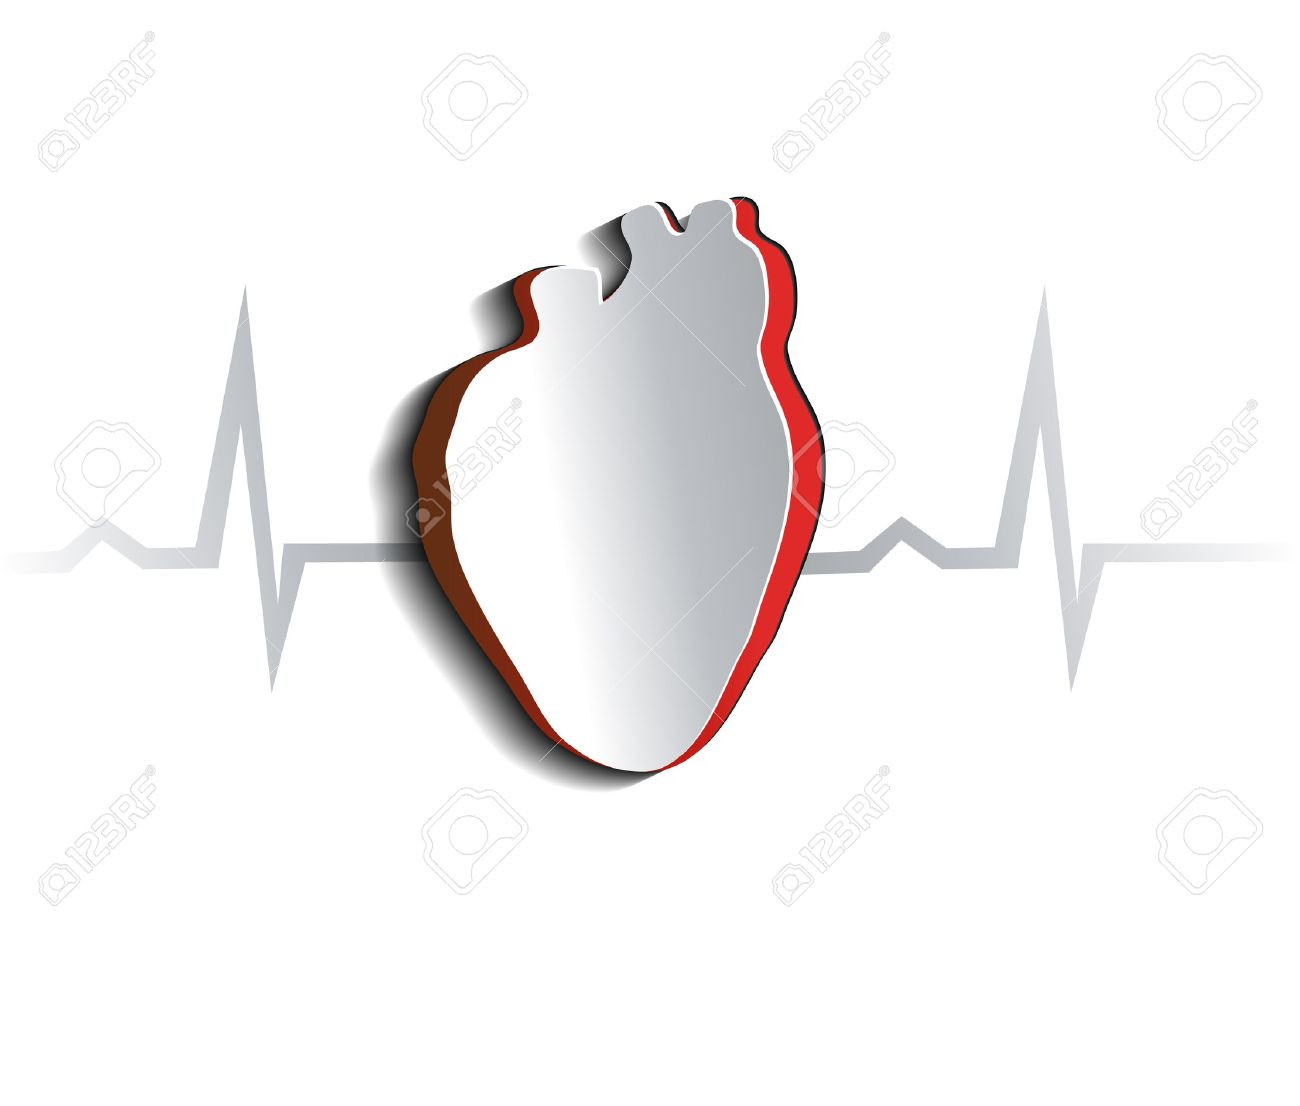 anatomy of human heart abstract design cut out heart shape